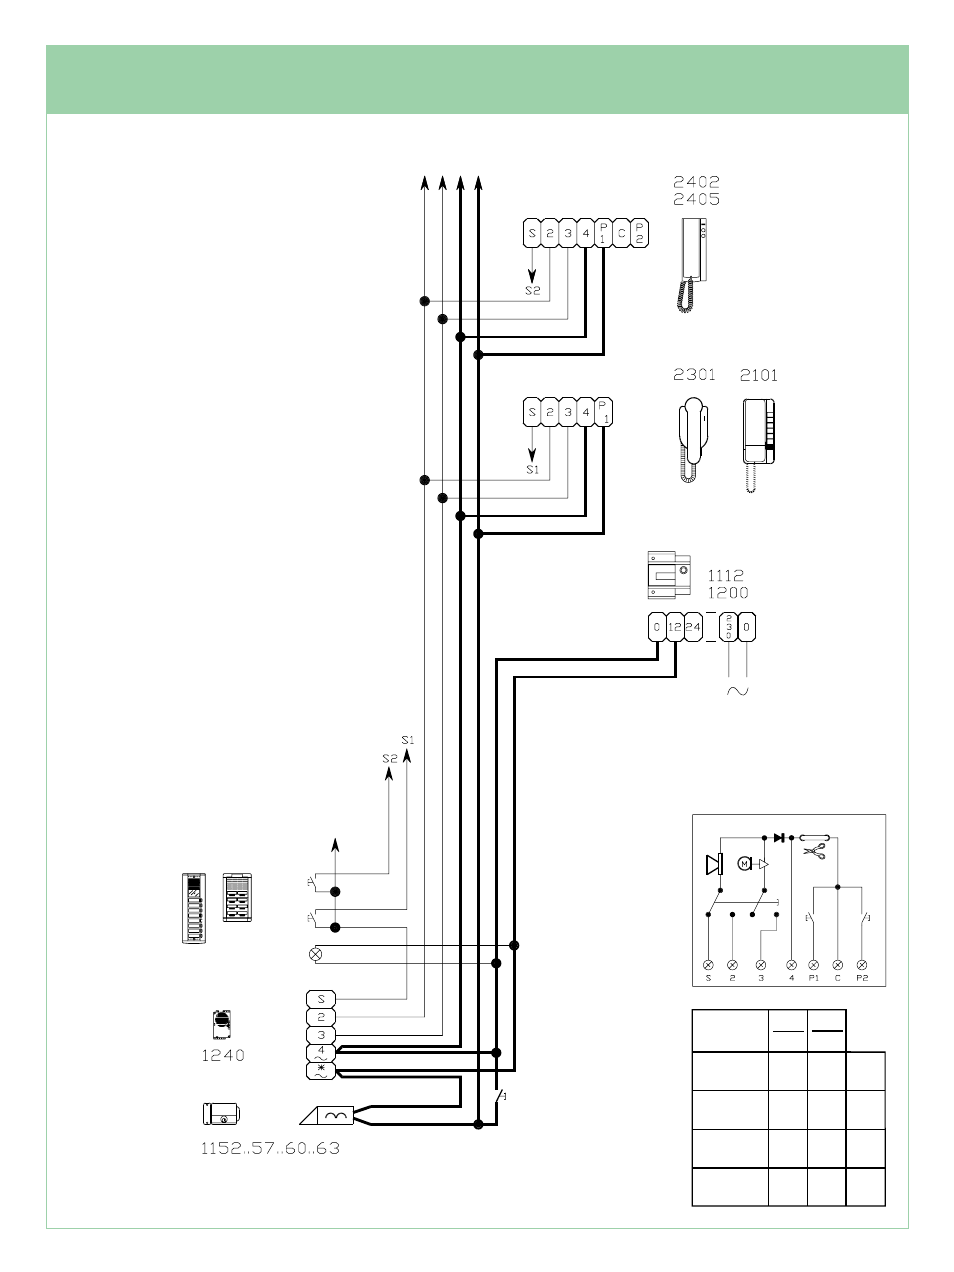 comelit wiring diagram parts of a lily intercom manual schematic usa corp cs5 01 ft 48 user